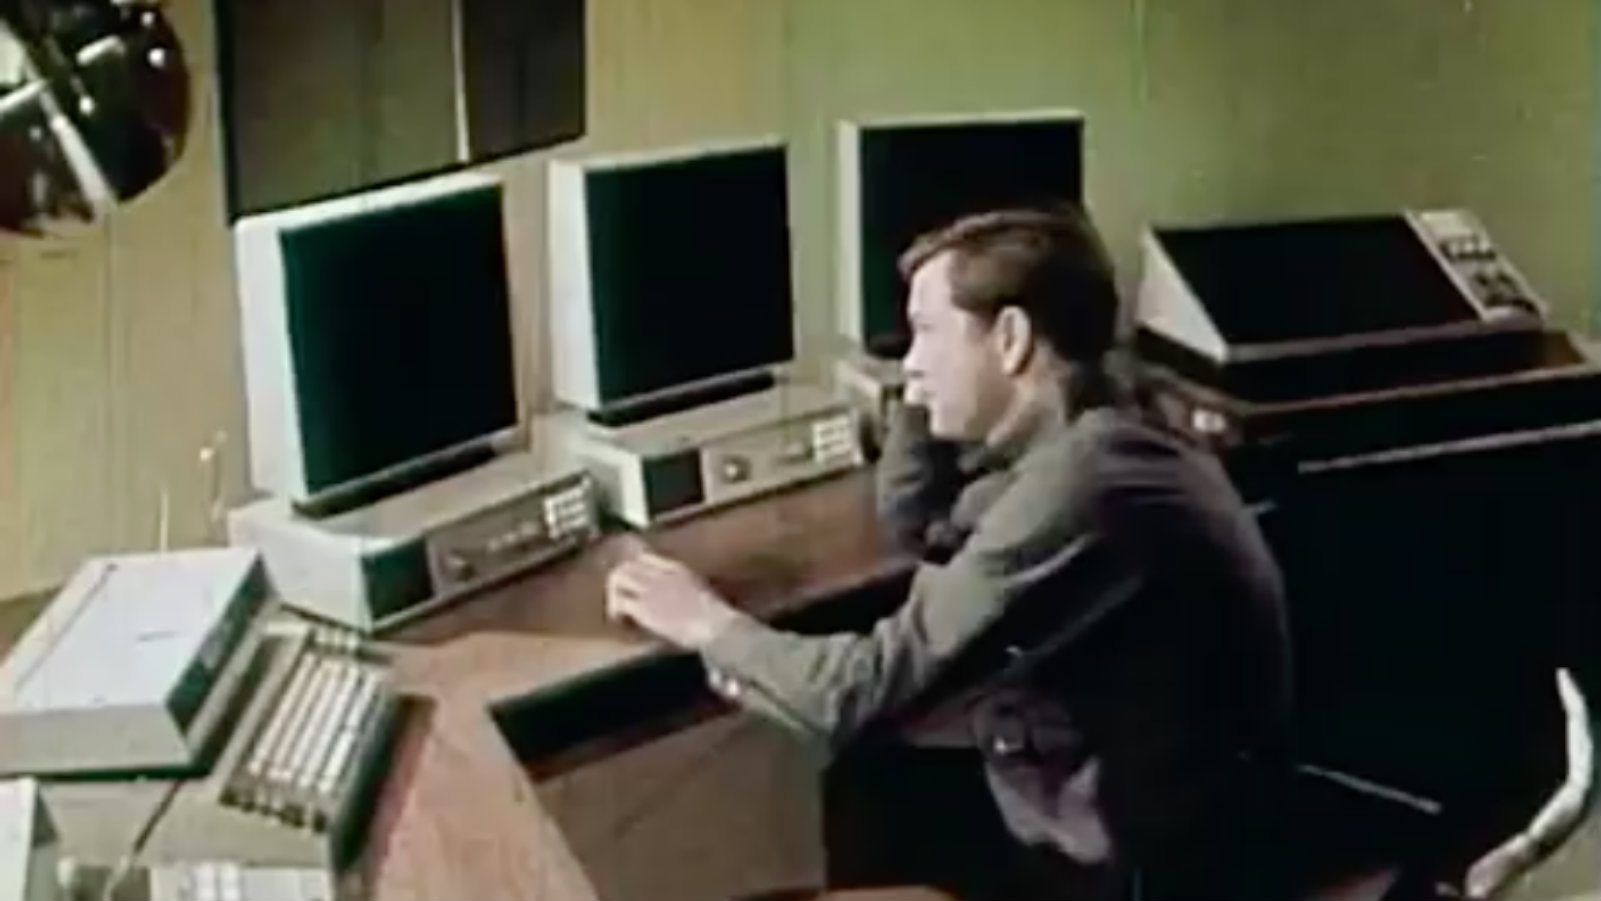 A still from the 1967 promotional film 1999 A.D.